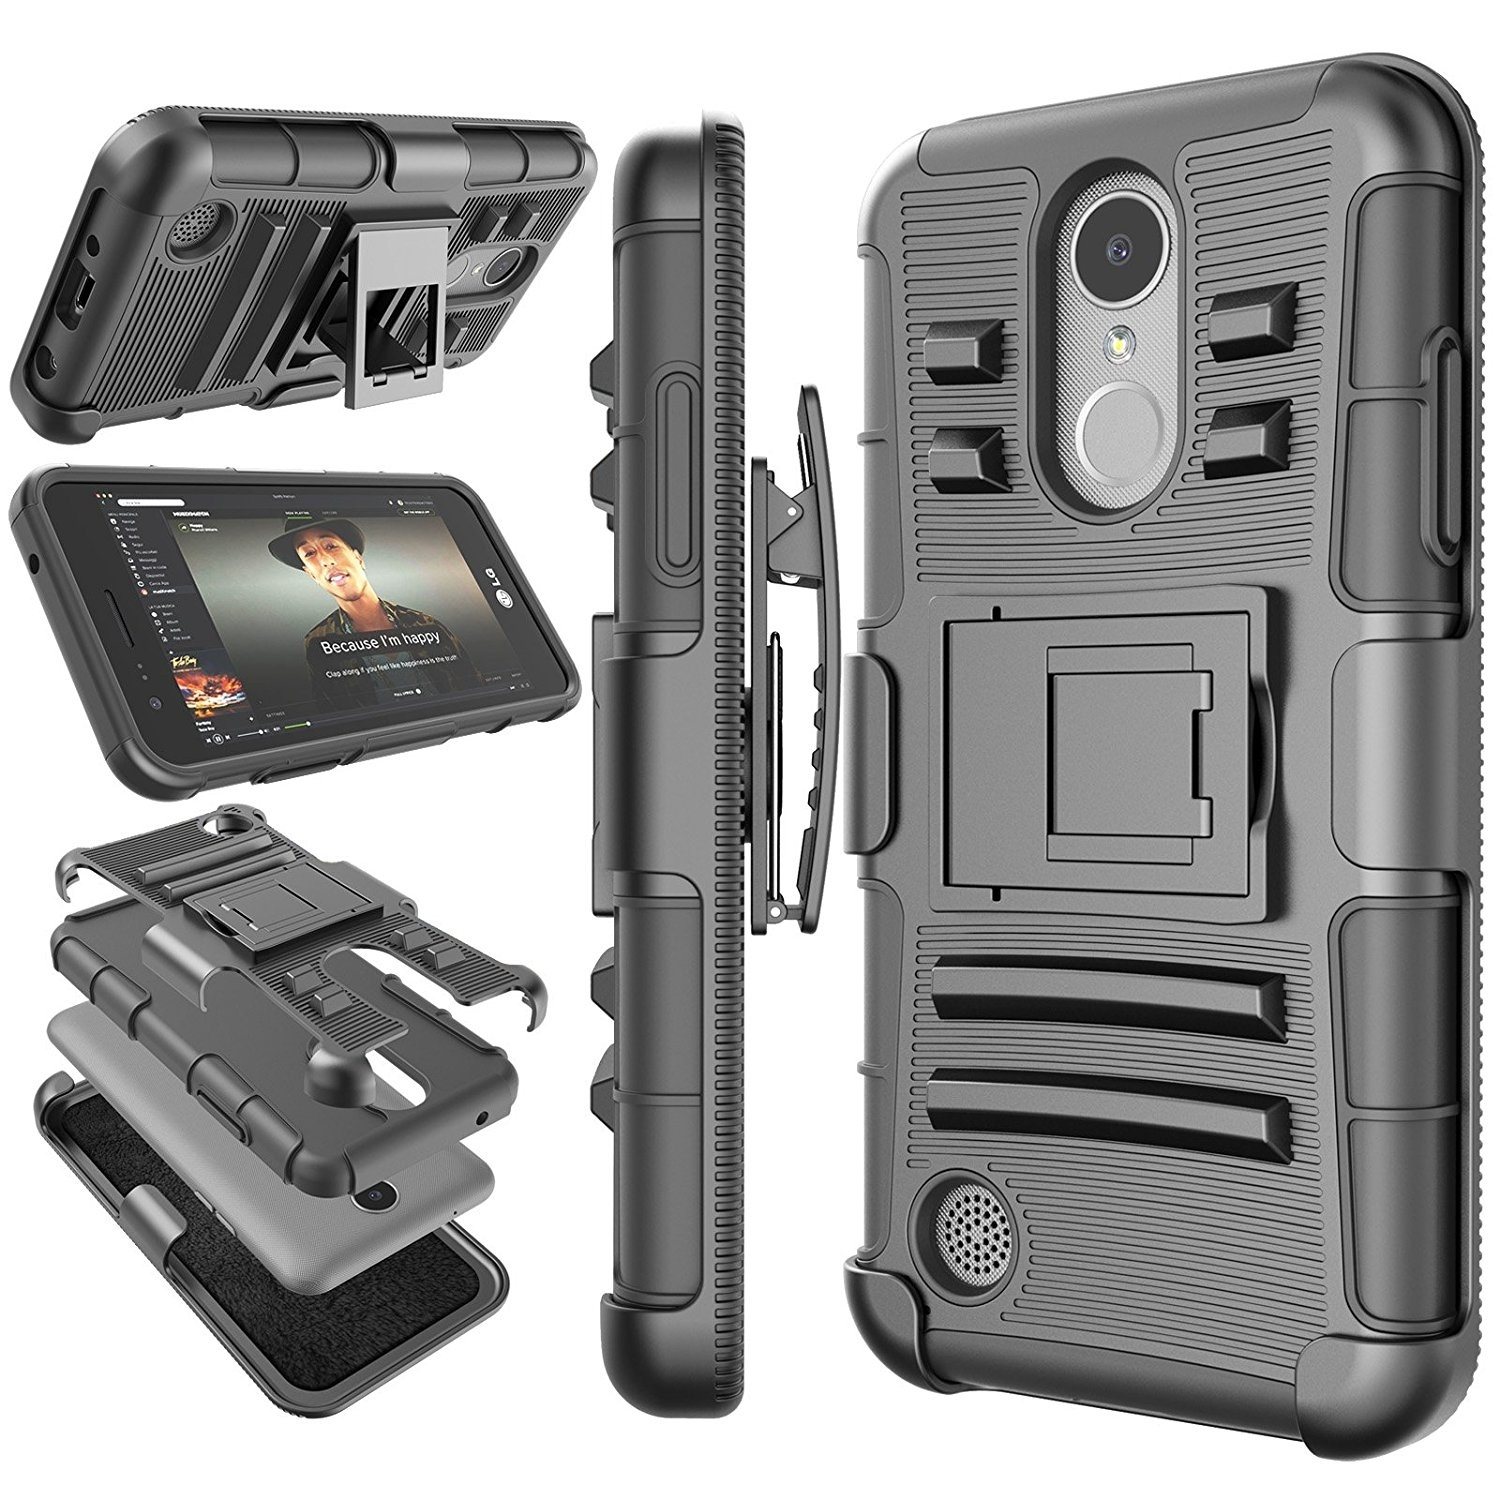 Belt Clip Hard Armor Case for <font><b>LG</b></font> V40 <font><b>V50</b></font> <font><b>ThinQ</b></font> V30 Q7 Stylo 5 4 K30 2019 K40 Phoenix 3 K10 2018 G8 <font><b>ThinQ</b></font> Cover Kickstand image